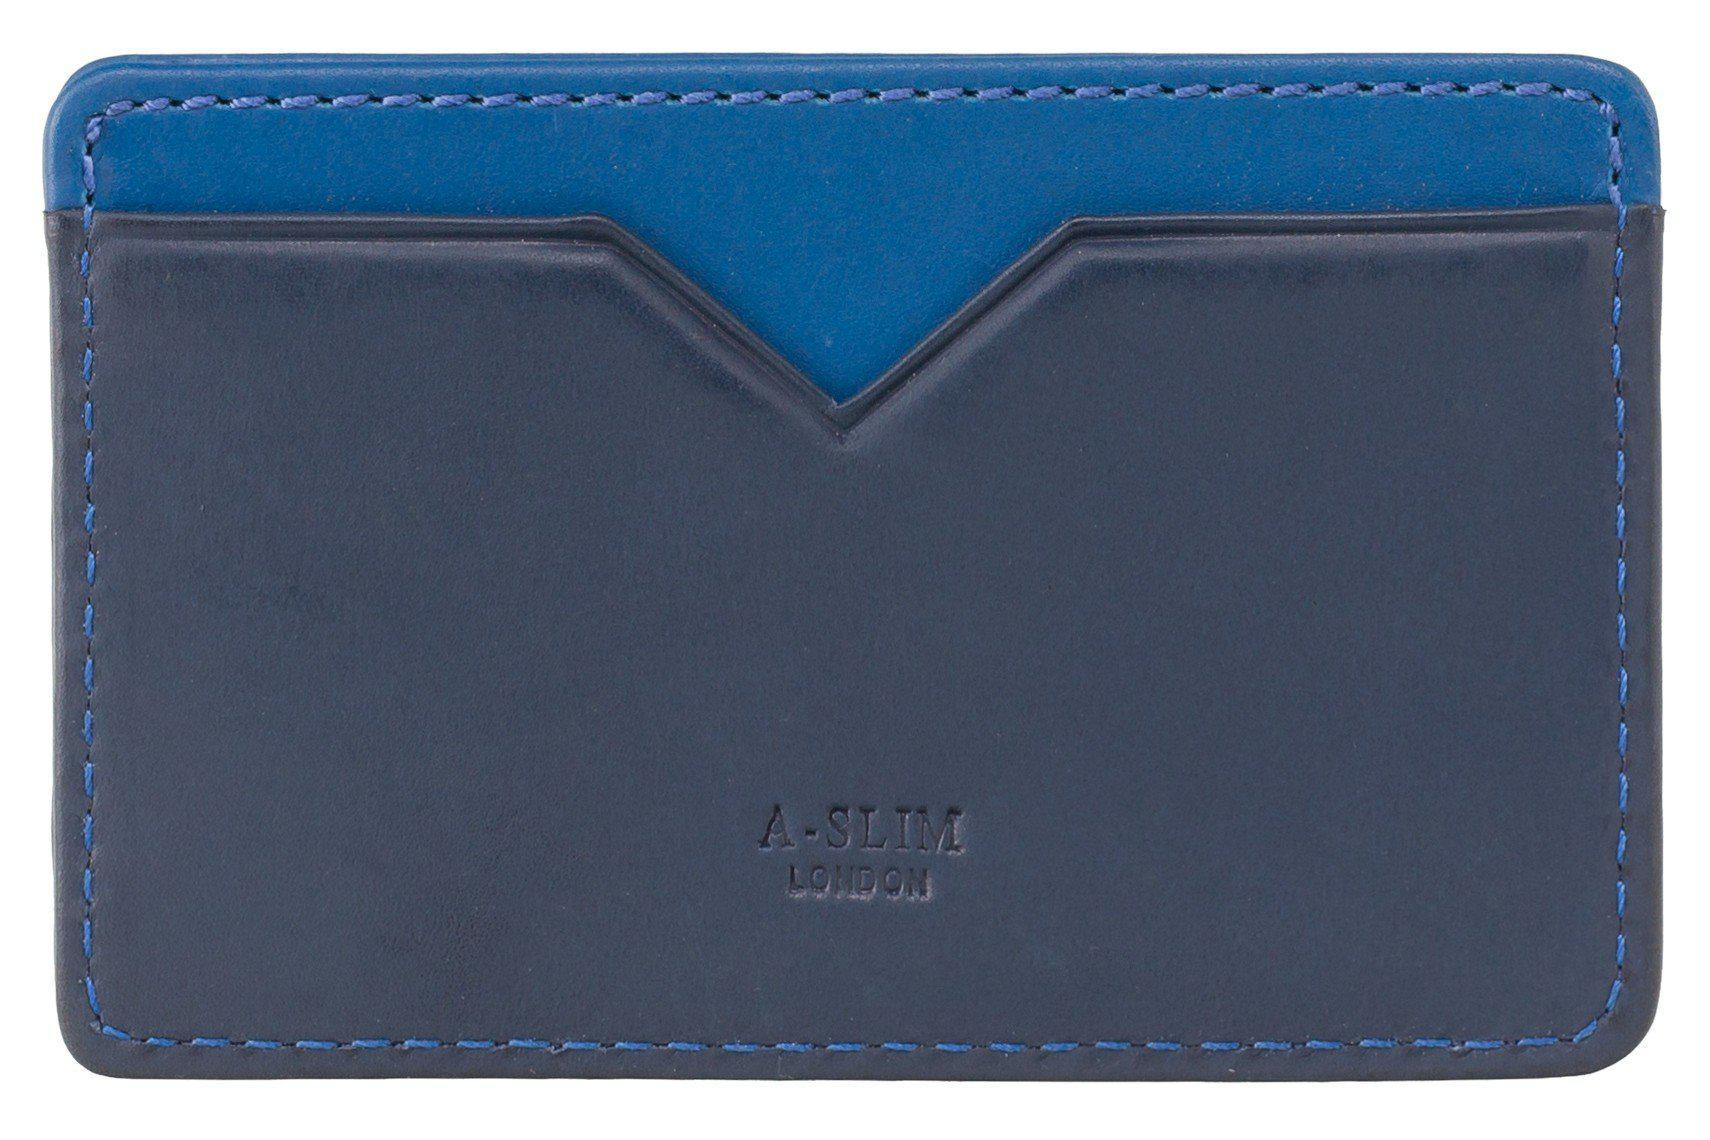 Wallet - Nano Yaiba - Small Card Holder